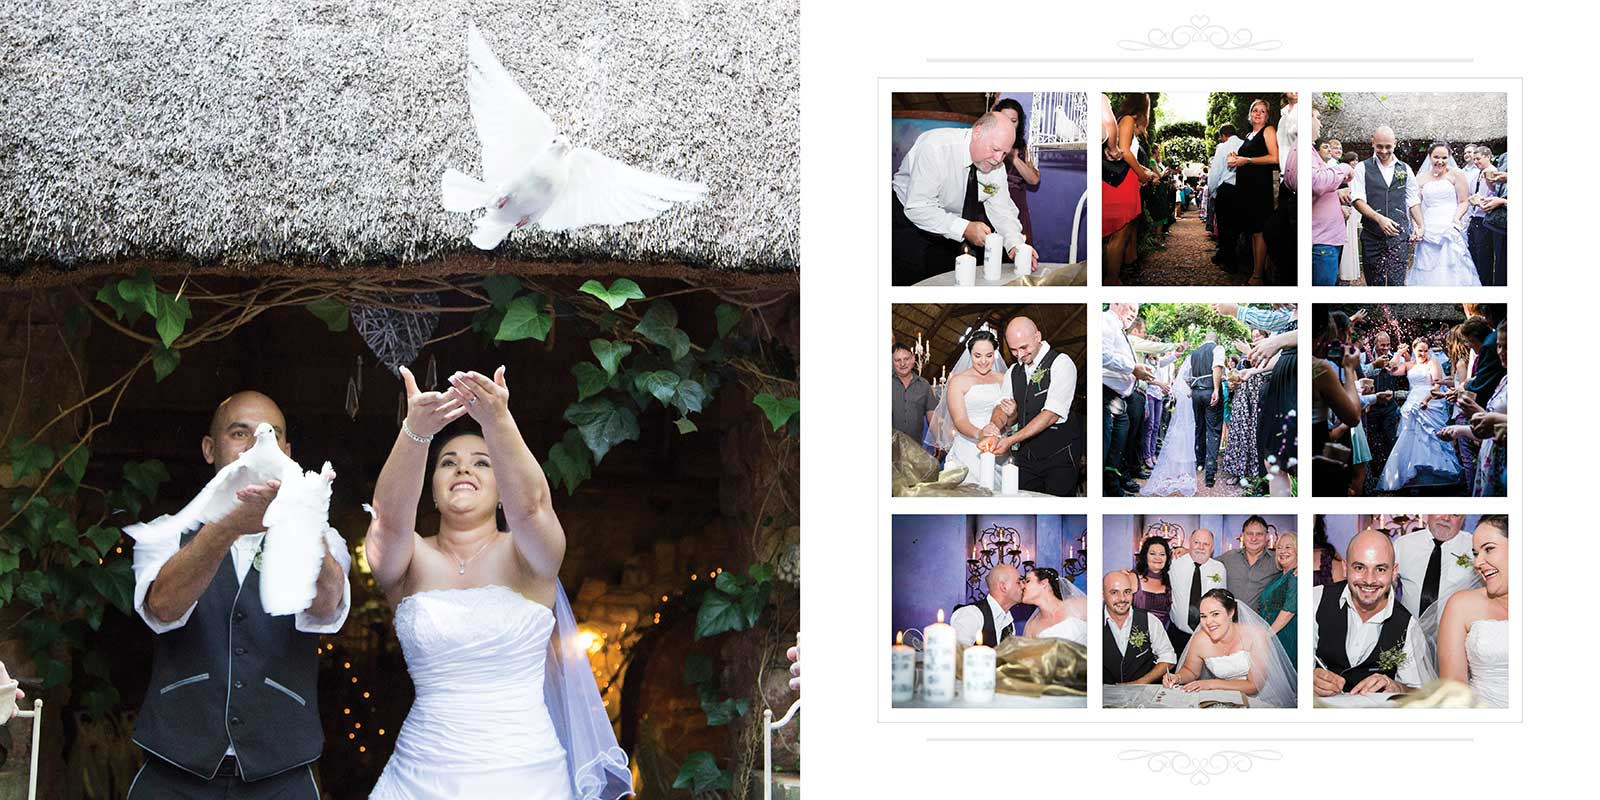 Doves set free on wedding date